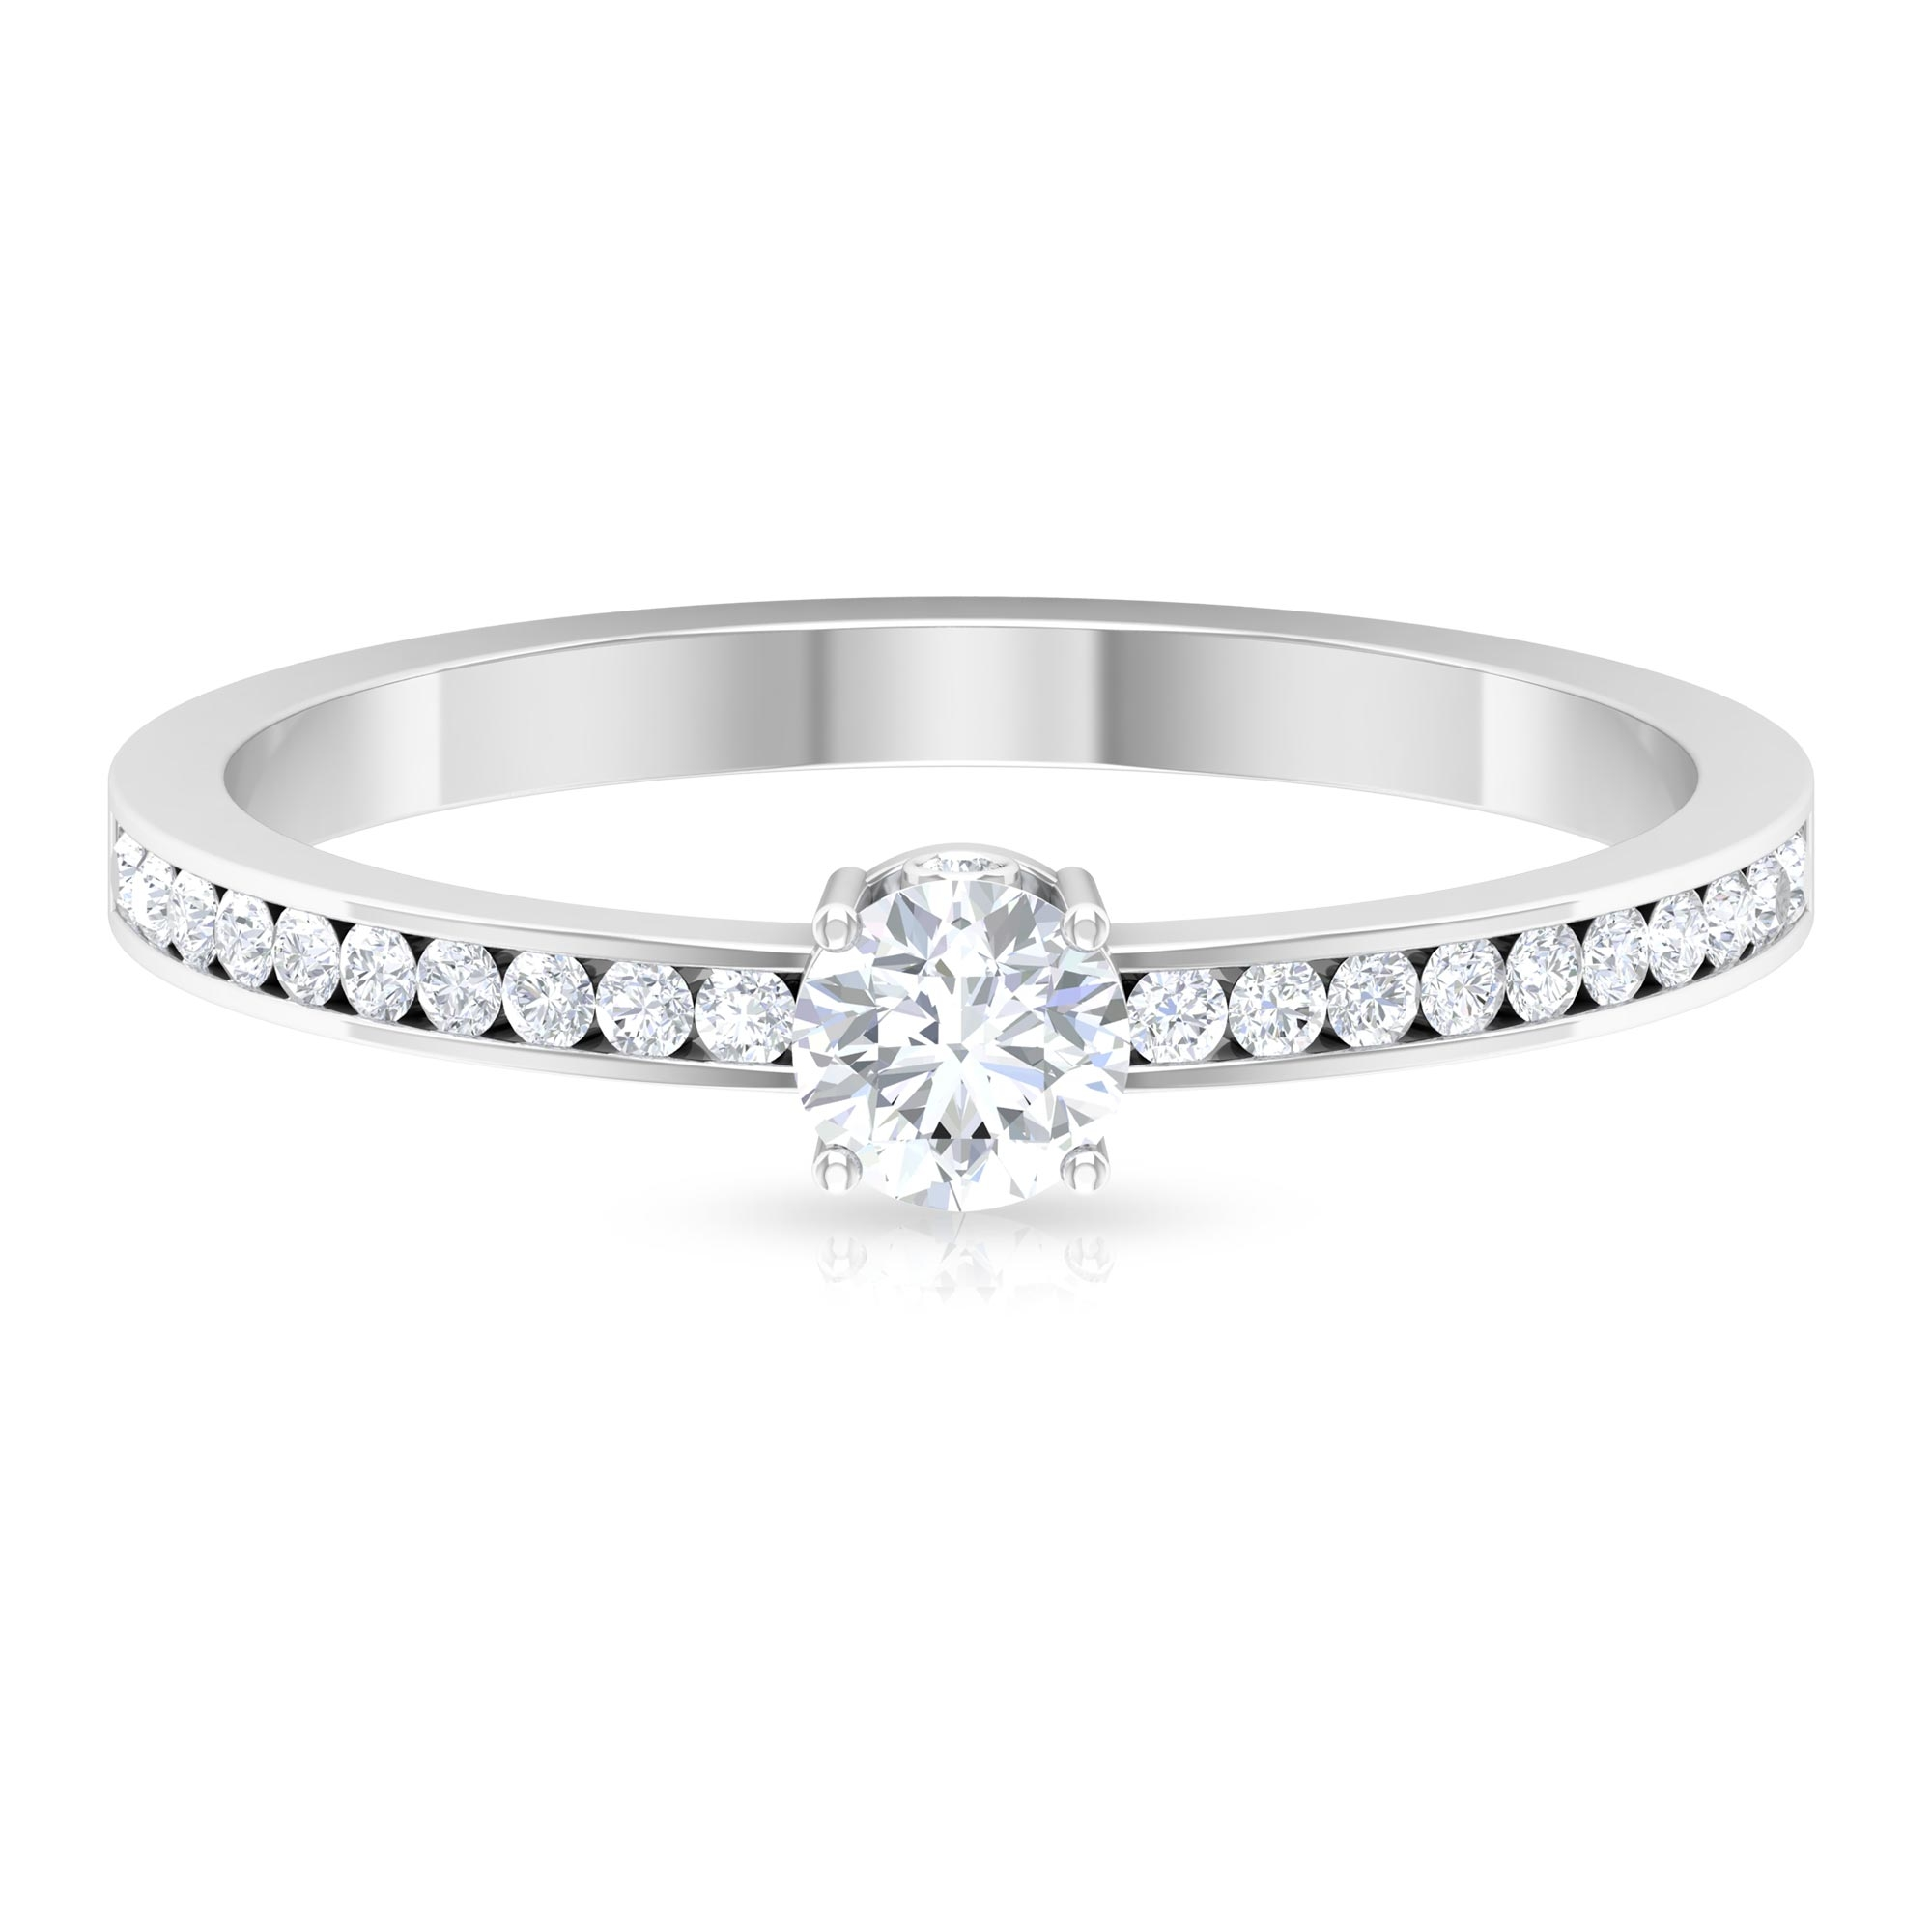 1/2 CT Round Cut Diamond Solitaire Ring with Surprise Style Shank and Channel Set Side Stones